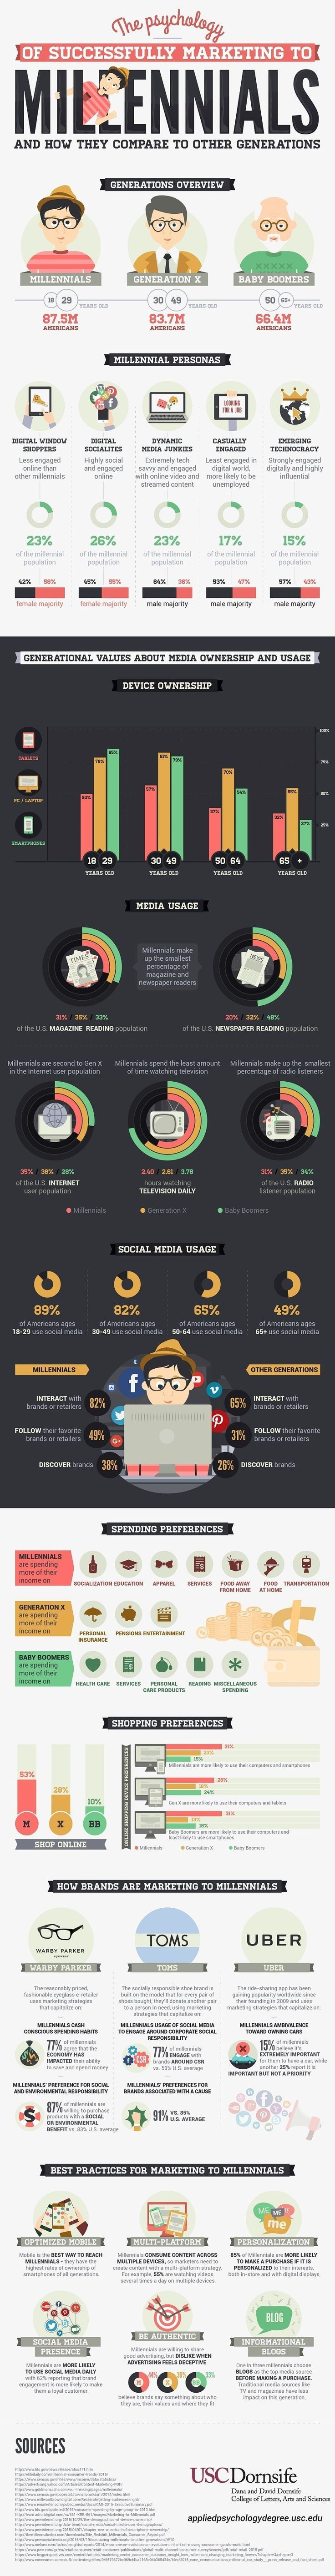 Marketing Strategy - Want to know more about Millennials and how to market to them? Here's a look at vital stats about this…